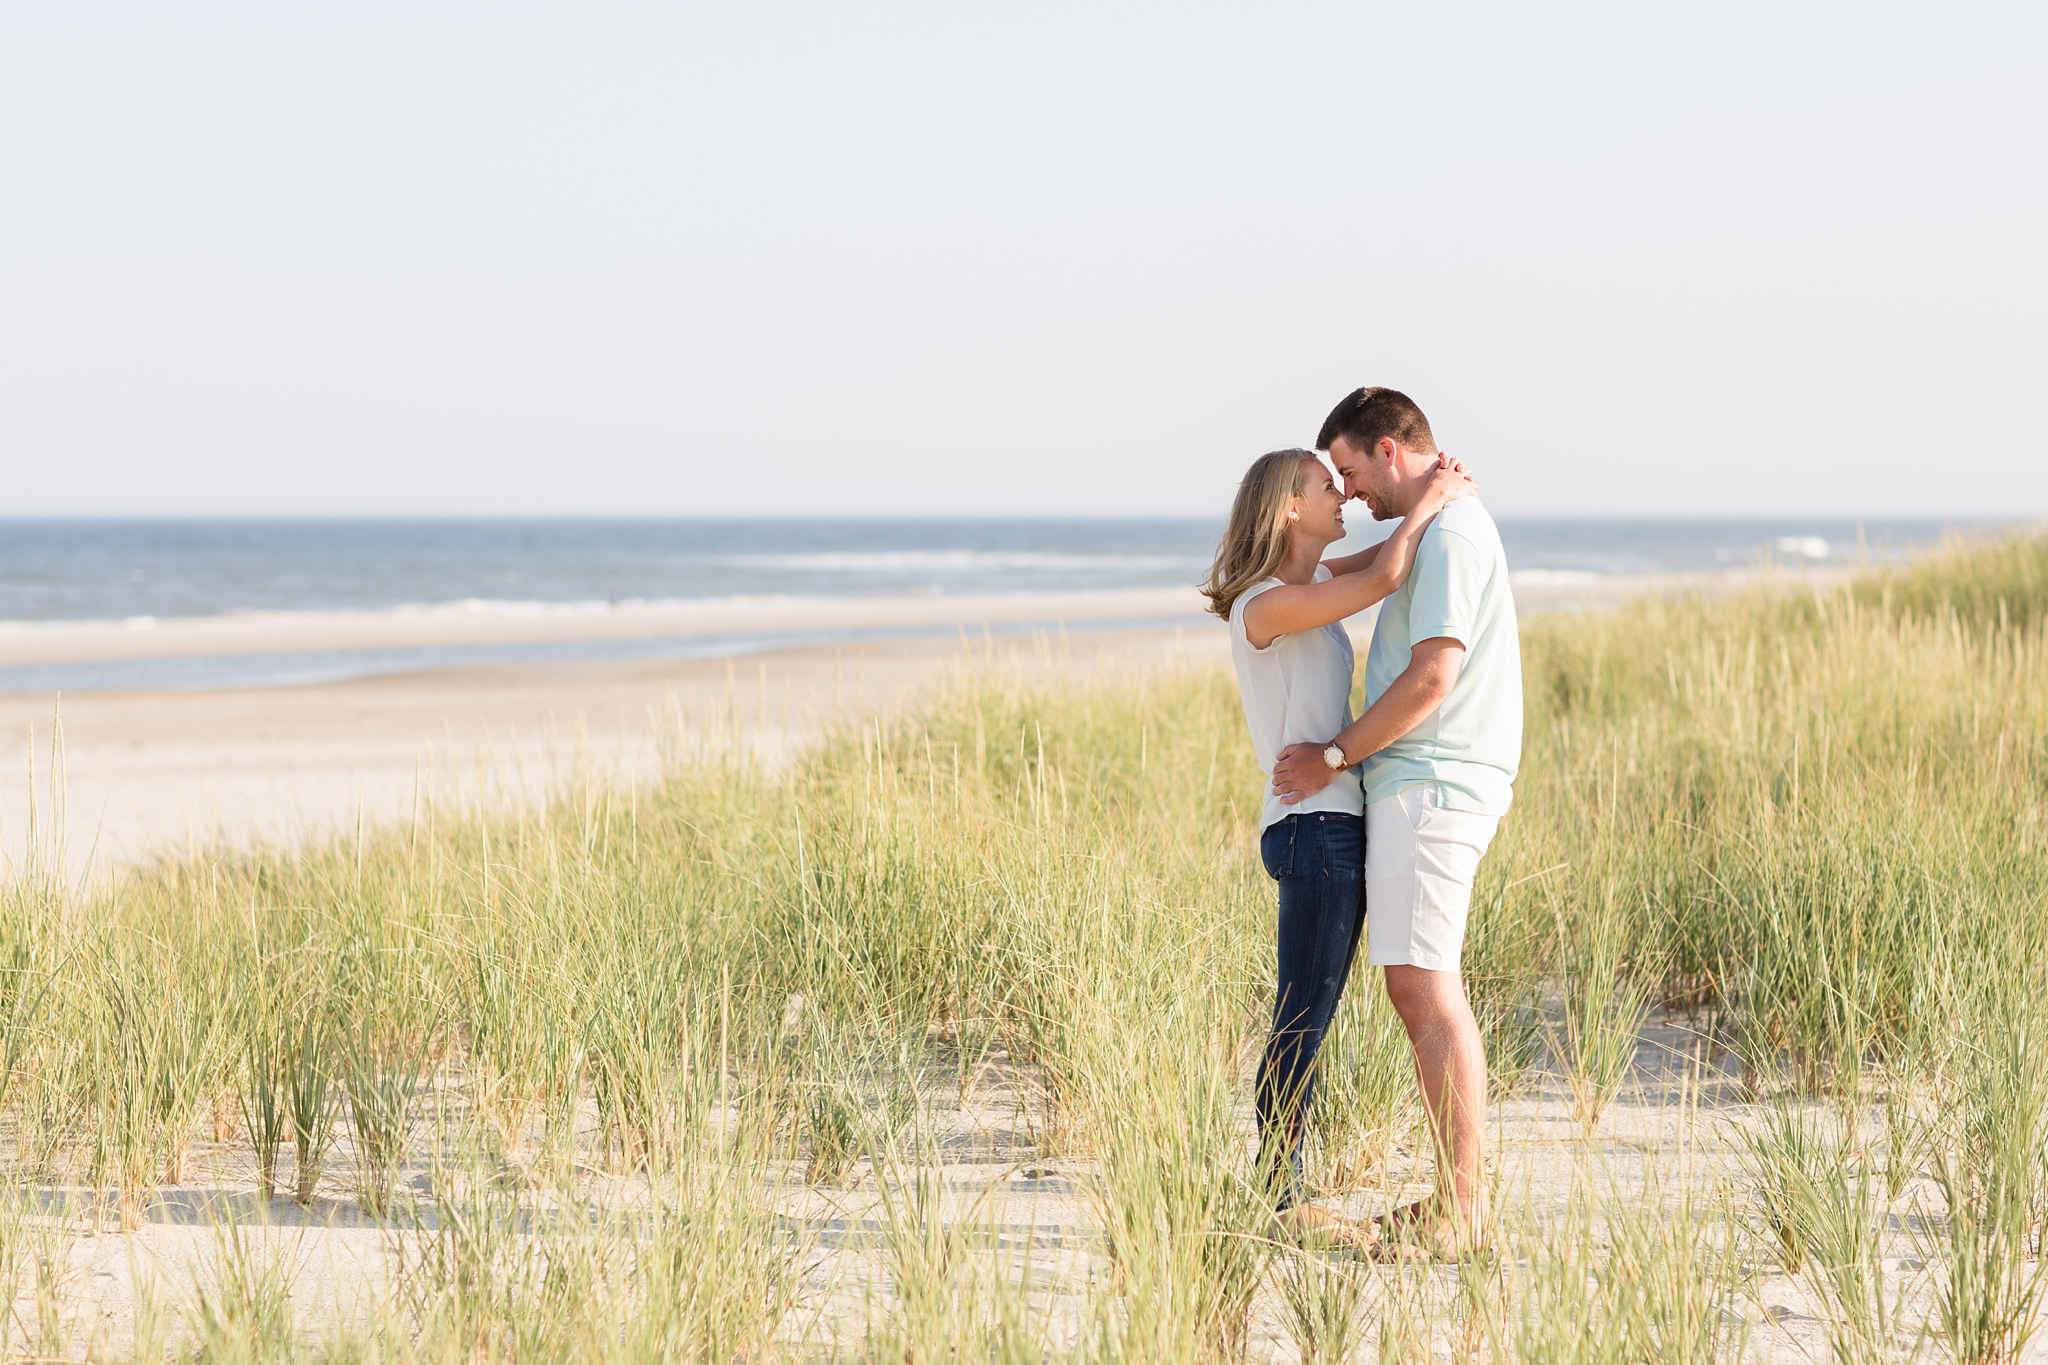 Sea_Isle_City_NJ_Beach_Engagement_Session_01.jpg